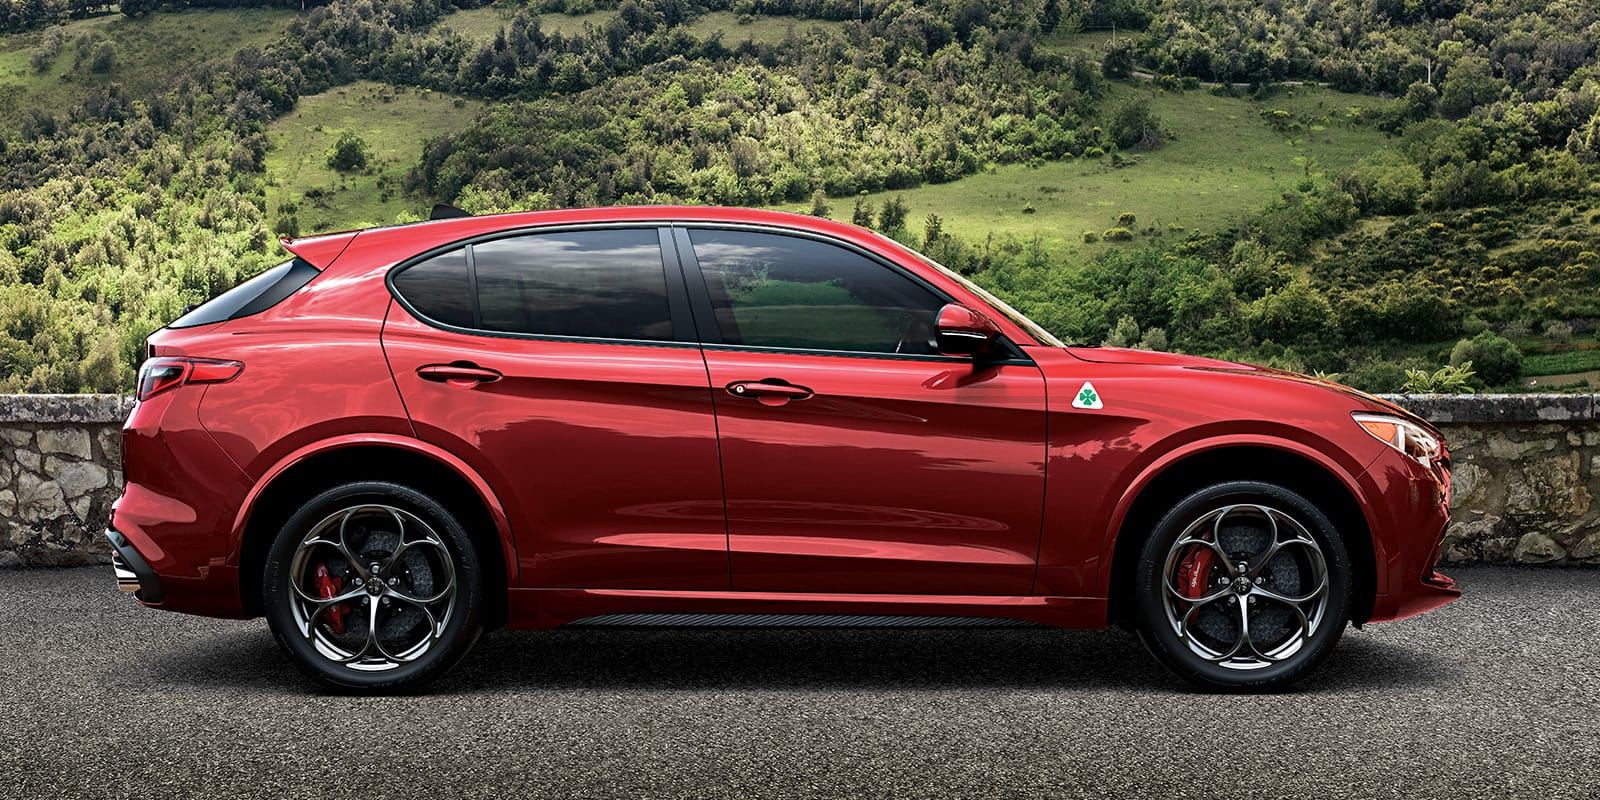 stelvio quadrifoglio the all new alfa romeo italian suv alfa romeo usa. Black Bedroom Furniture Sets. Home Design Ideas